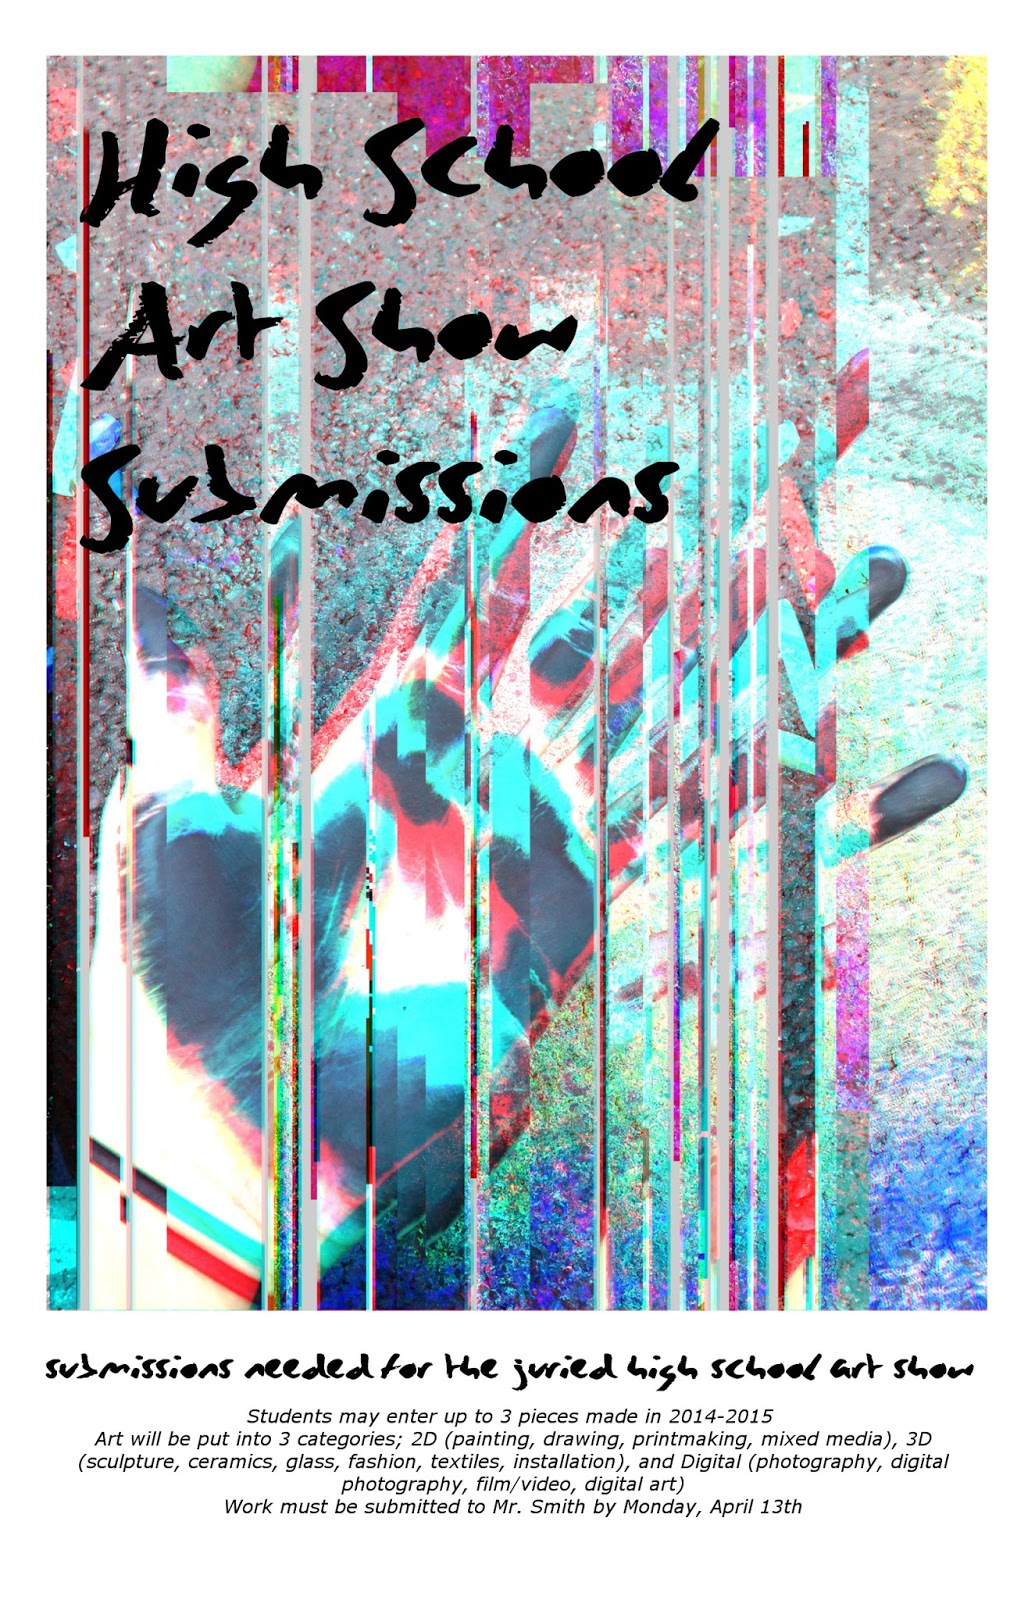 Poster design gimp - Digital Art Students Were Given The Assignment To Make A 11 X 17 Poster For The Call For Submissions For Our Upper School Art Show